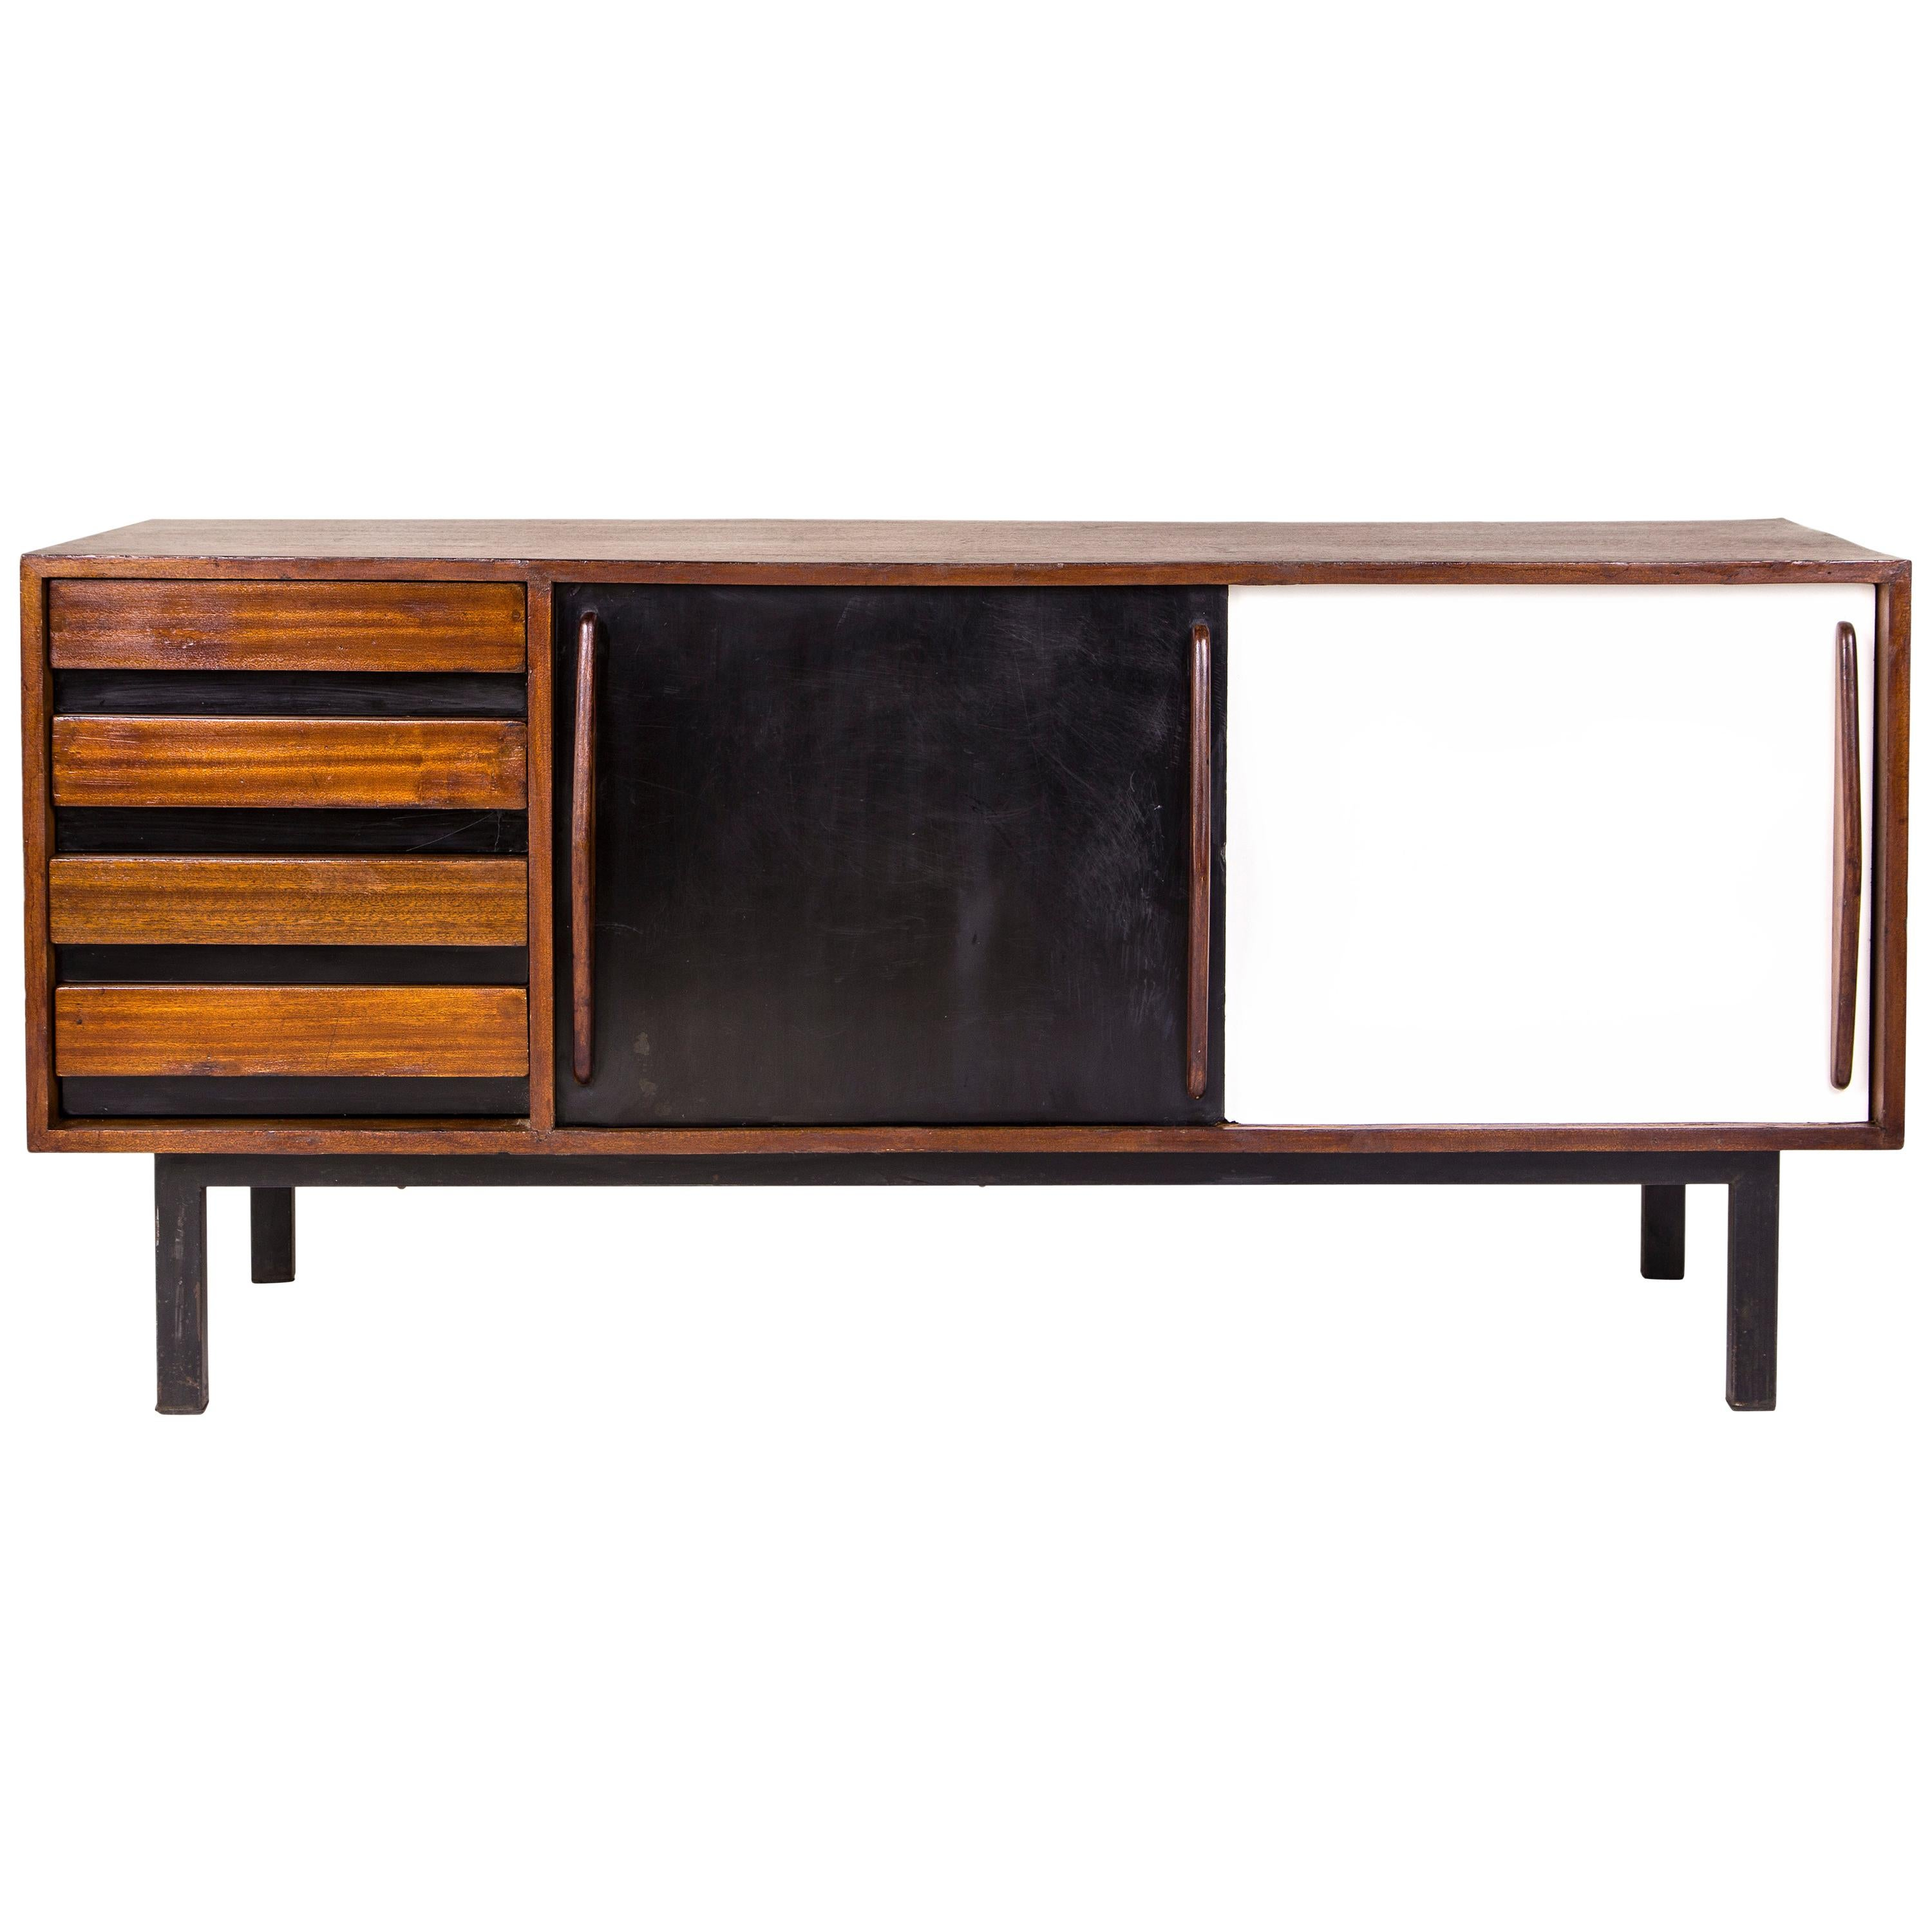 Antique Vintage Mid Century And Modern Furniture 506 188 For